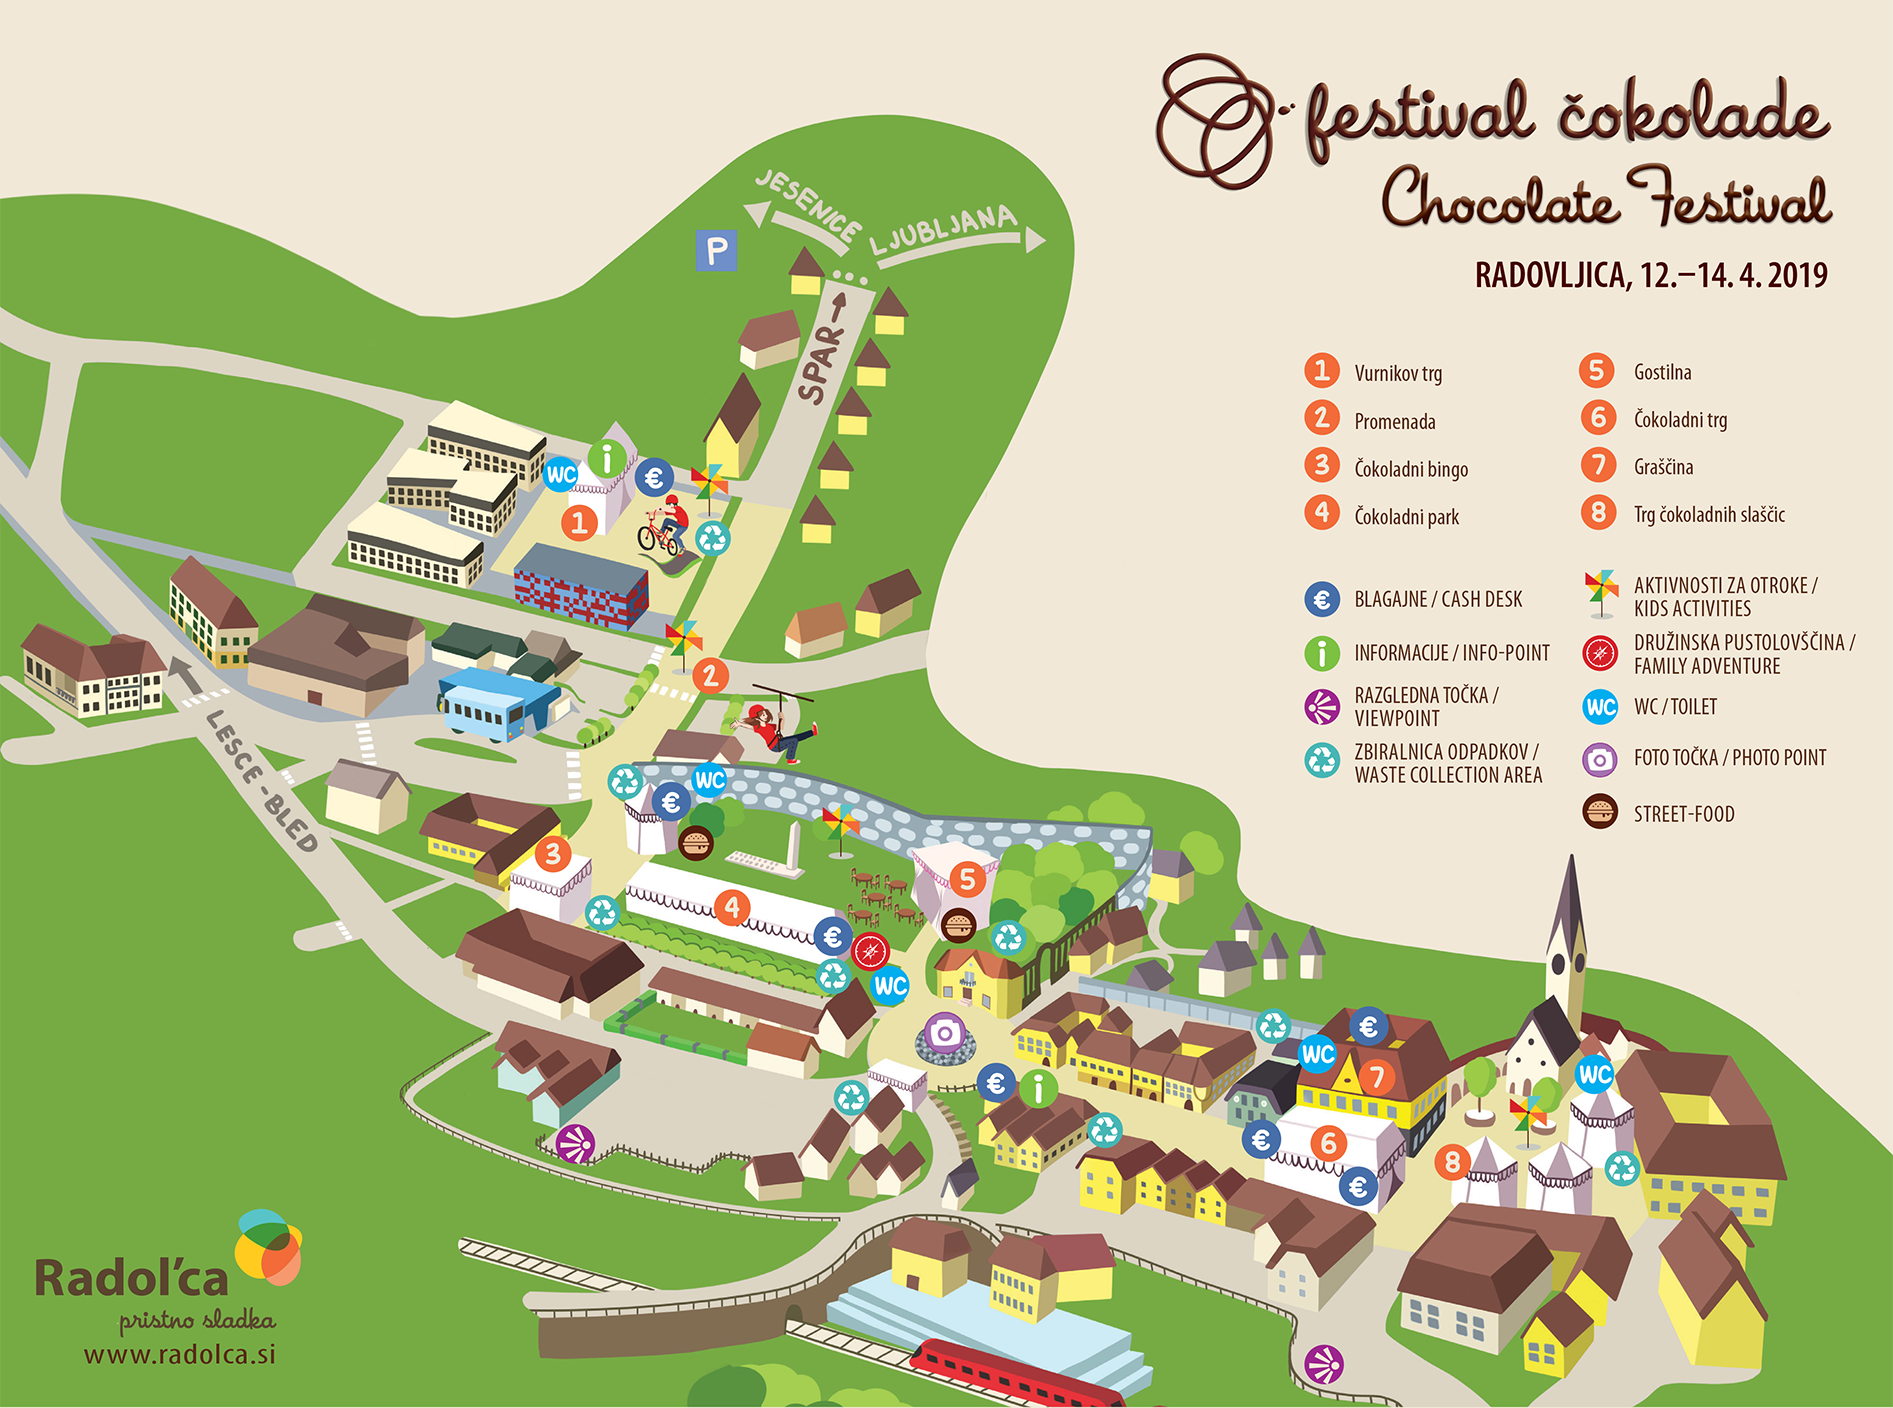 Radovljica Chocolate Festival Map 2019